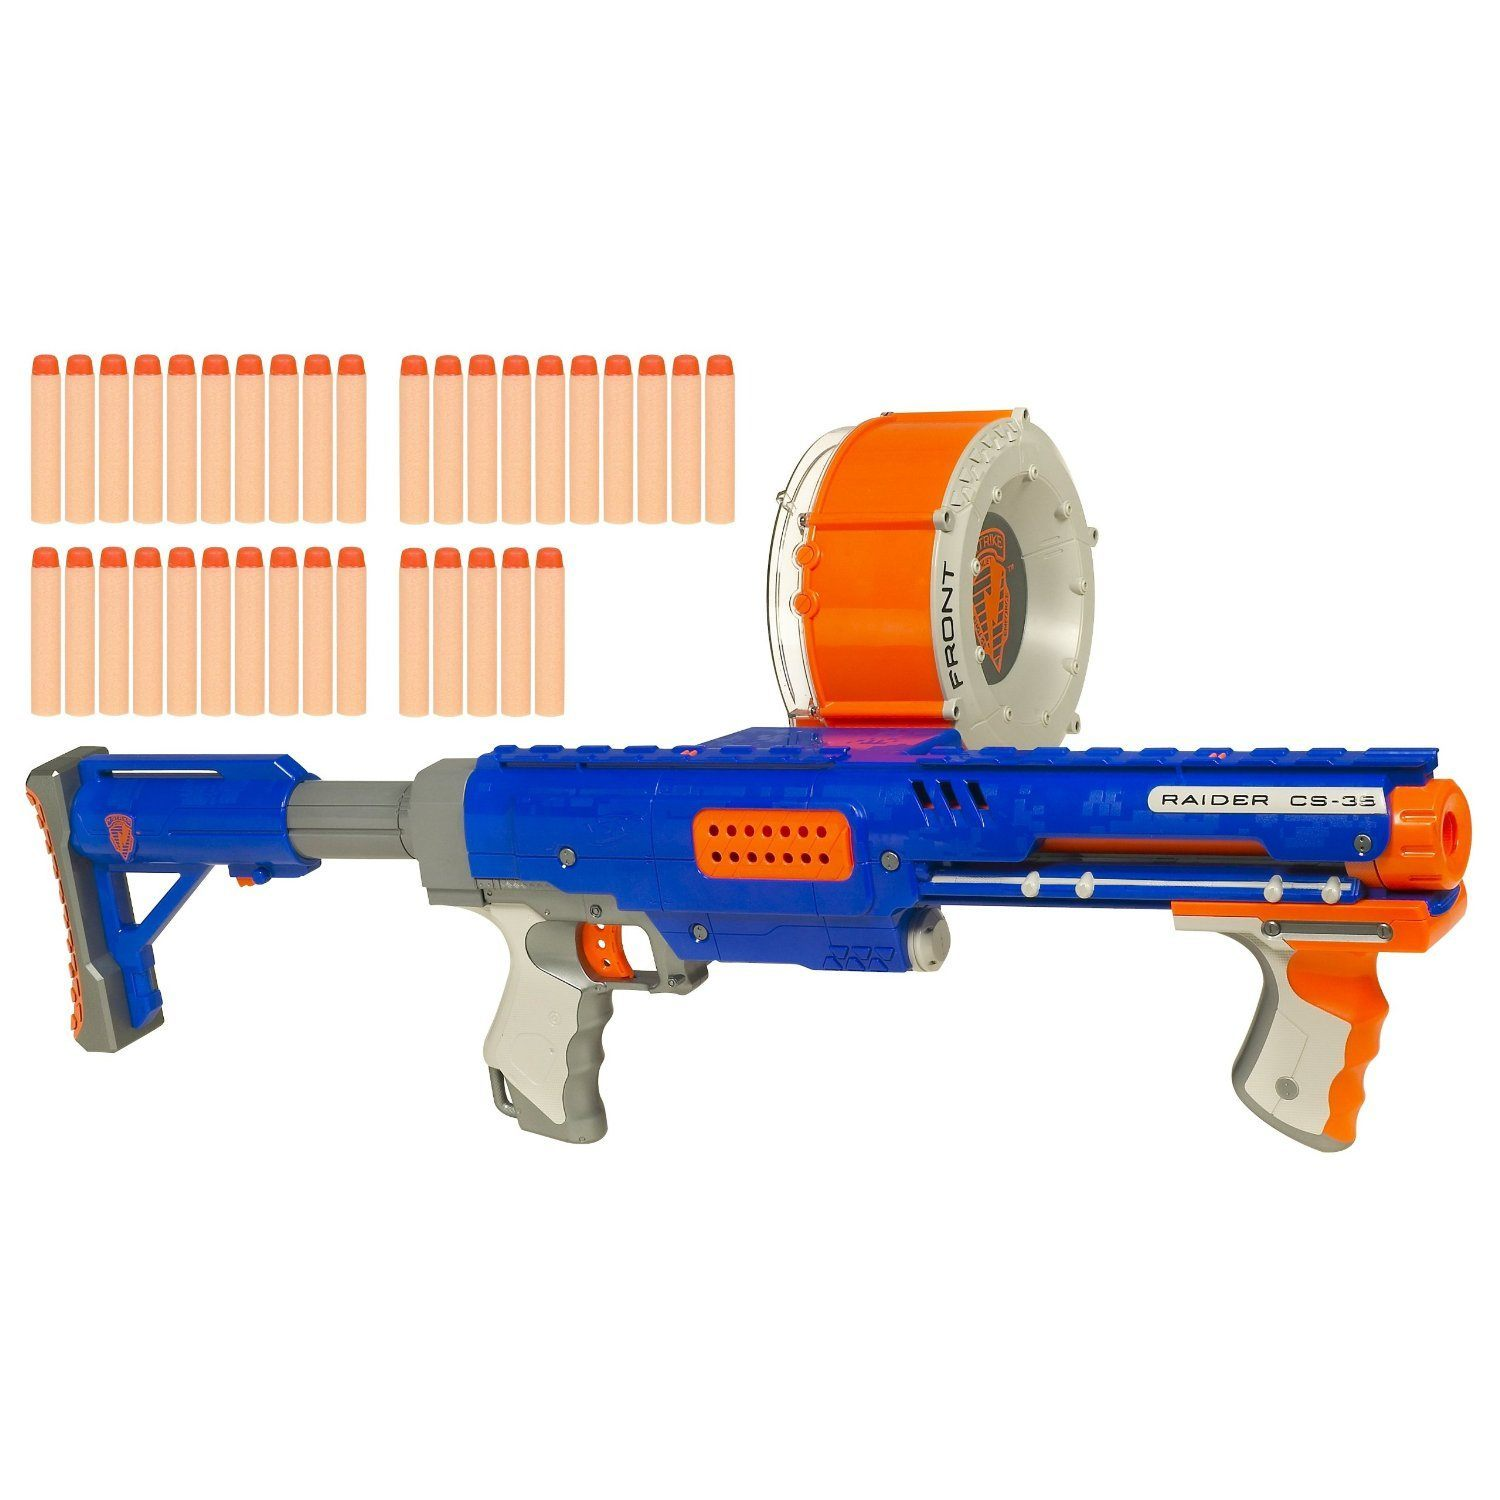 nerf raider cs 35 pistolet nerf. Black Bedroom Furniture Sets. Home Design Ideas